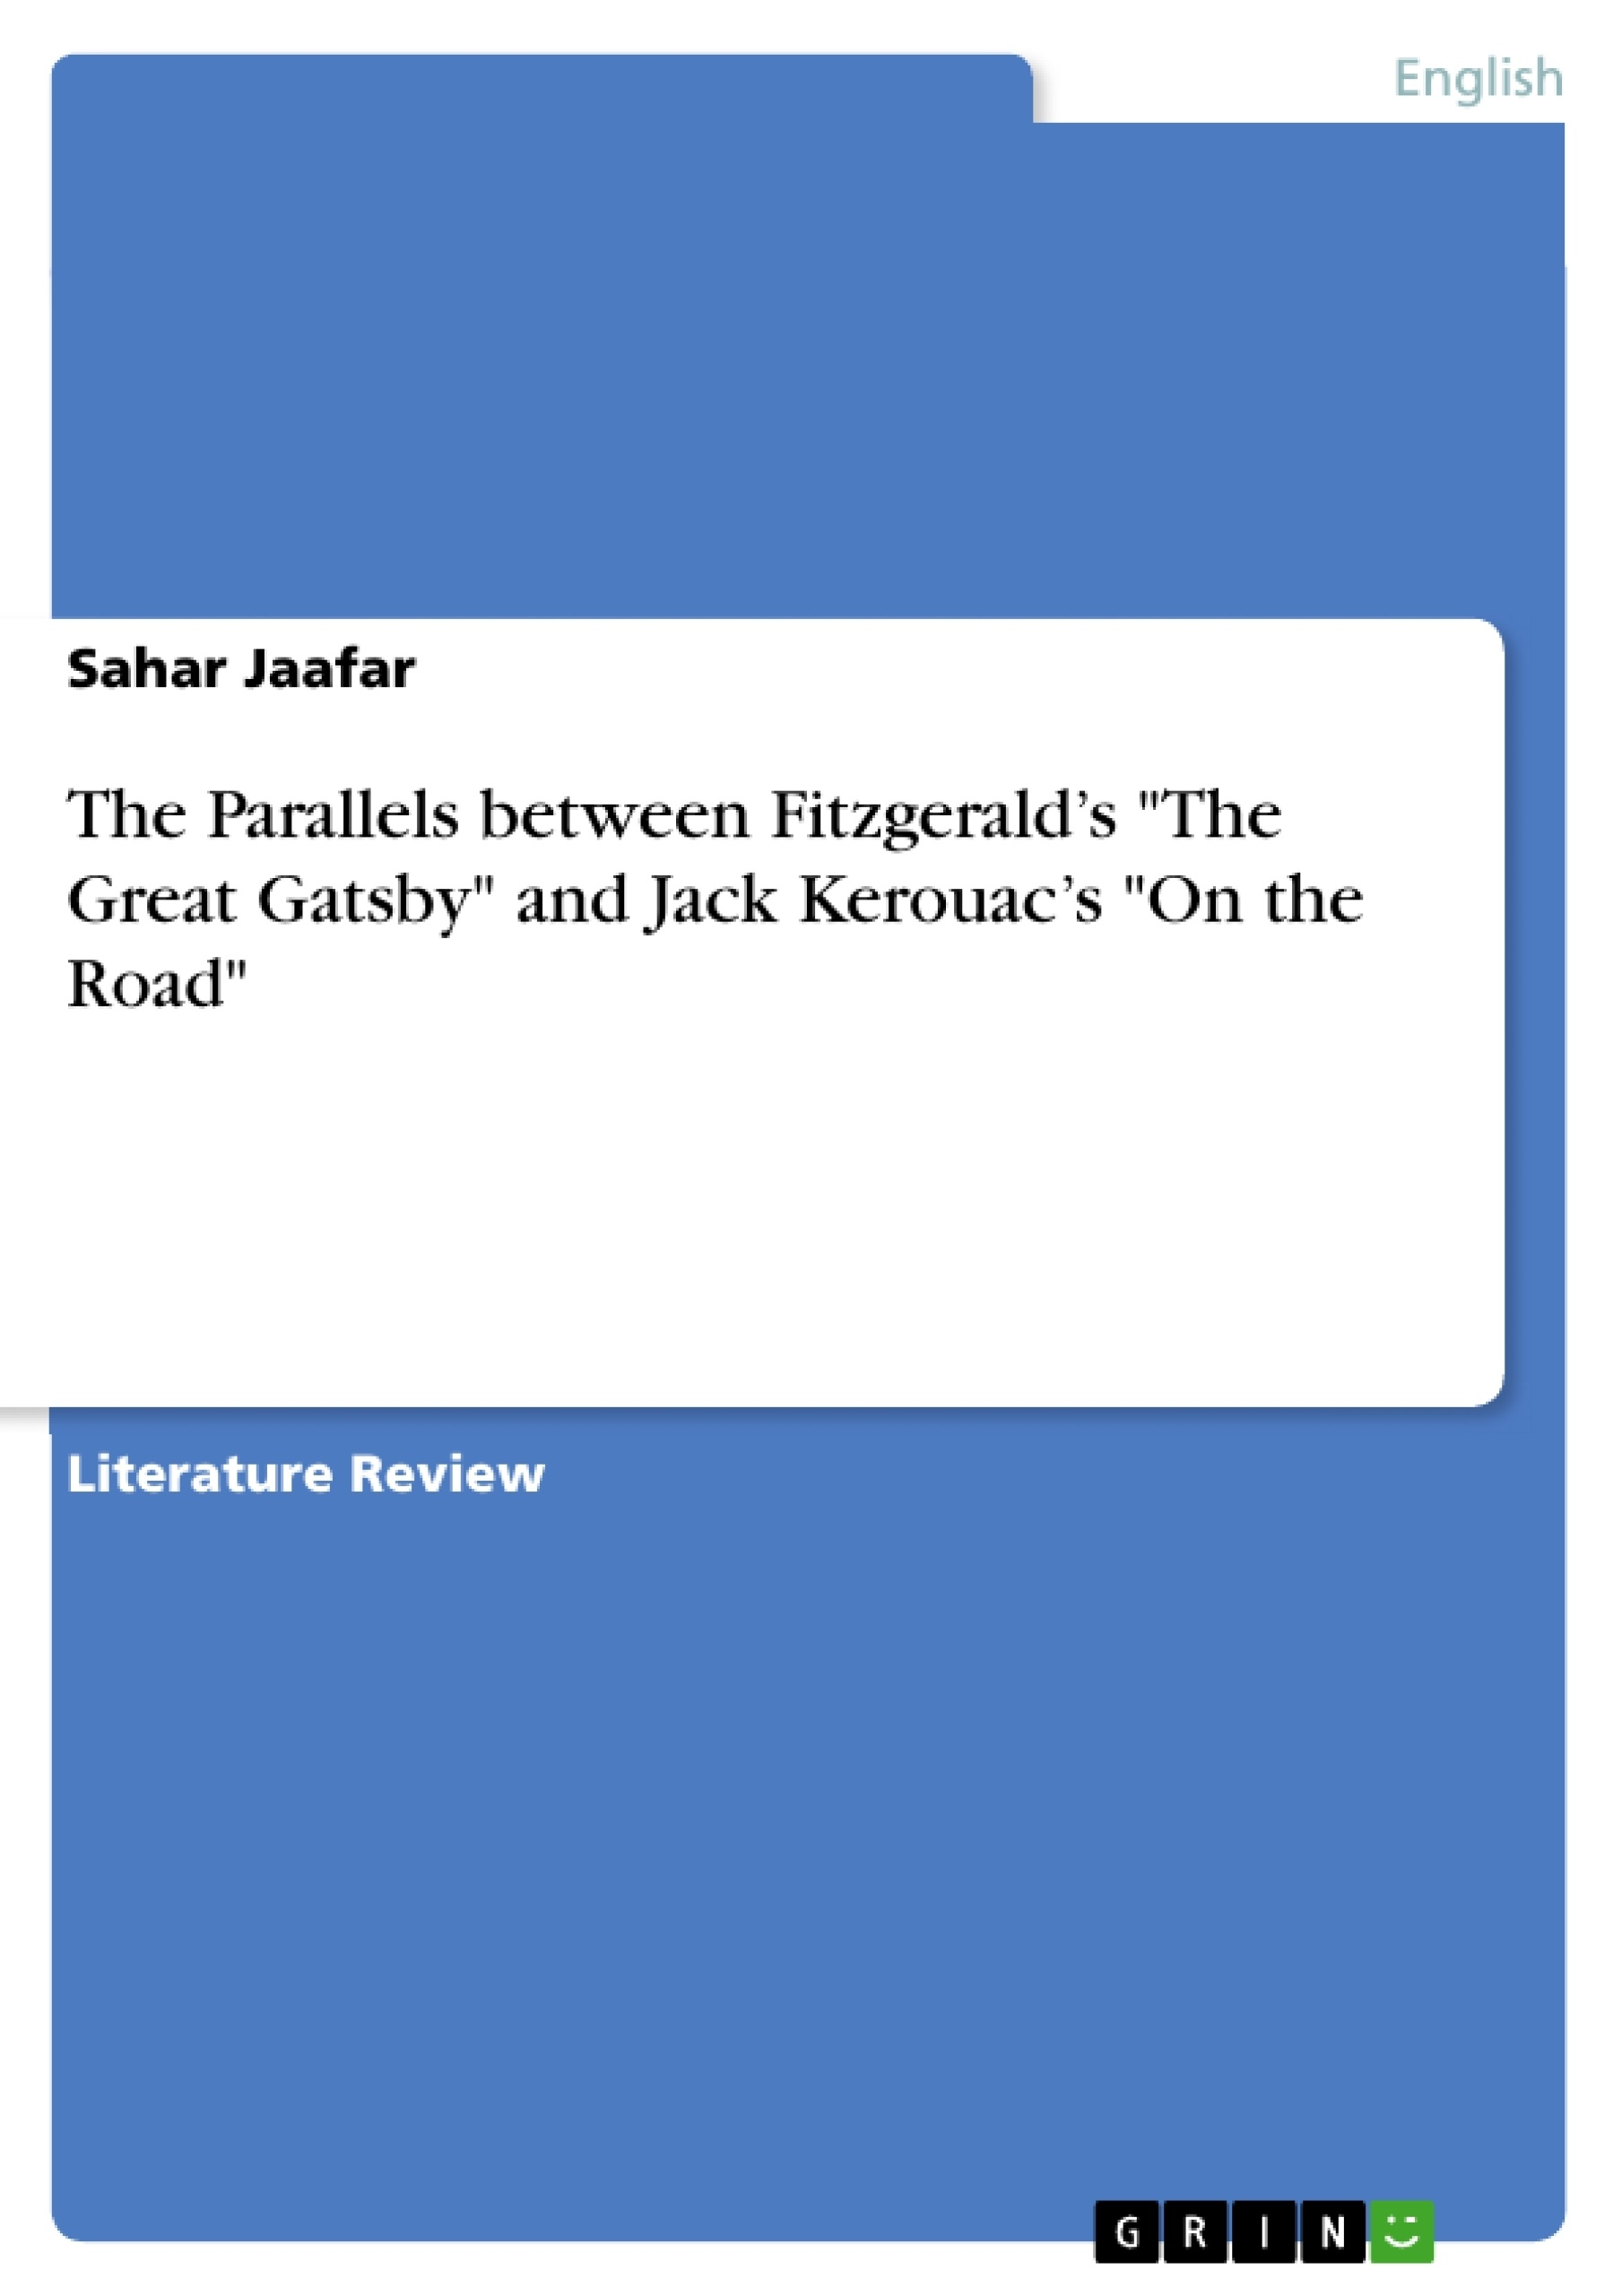 """Title: The Parallels between Fitzgerald's """"The Great Gatsby"""" and Jack Kerouac's """"On the Road"""""""